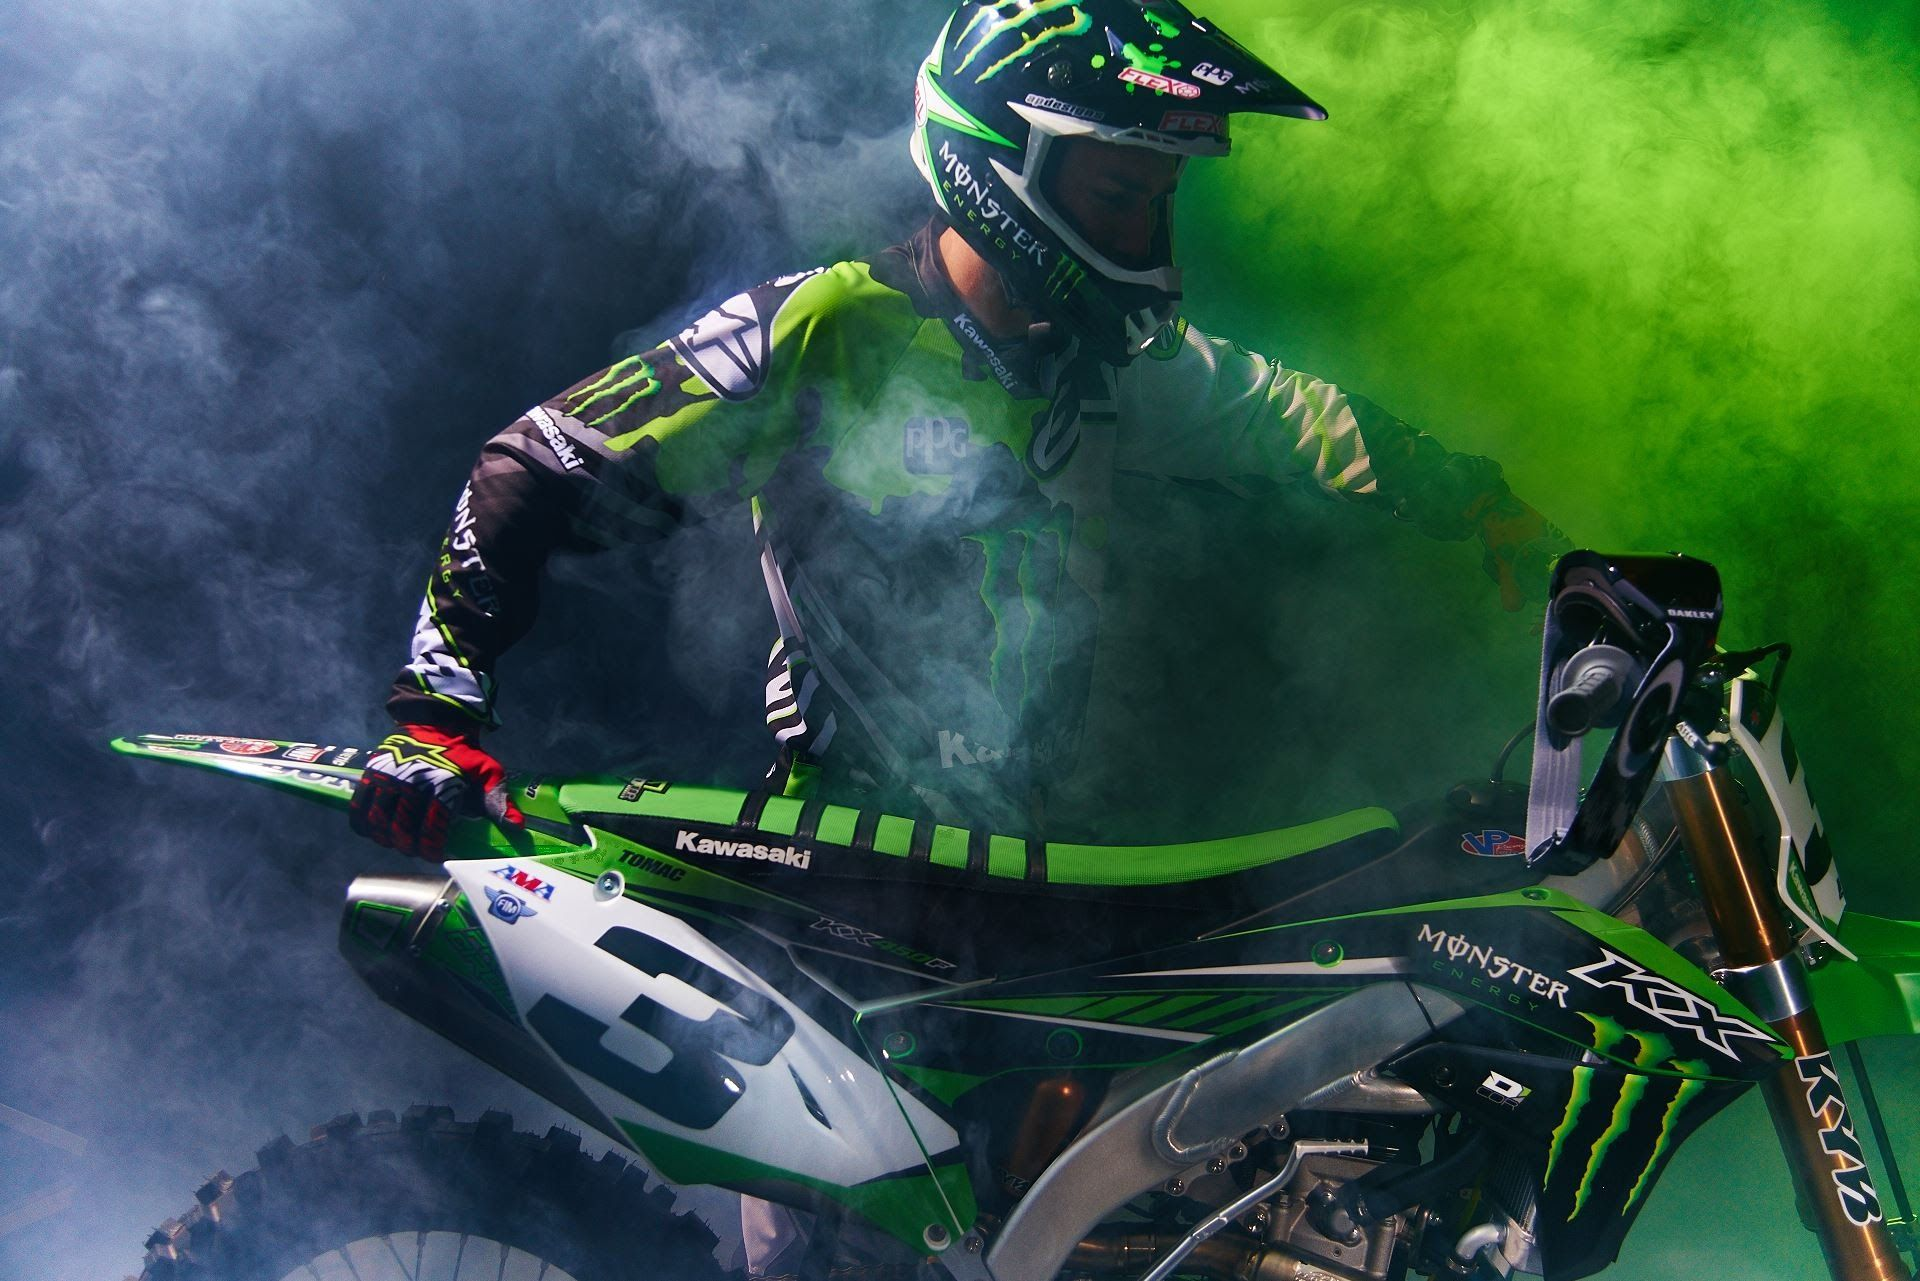 49 Best Free Kawasaki Dirt Bike Wallpapers Wallpaperaccess